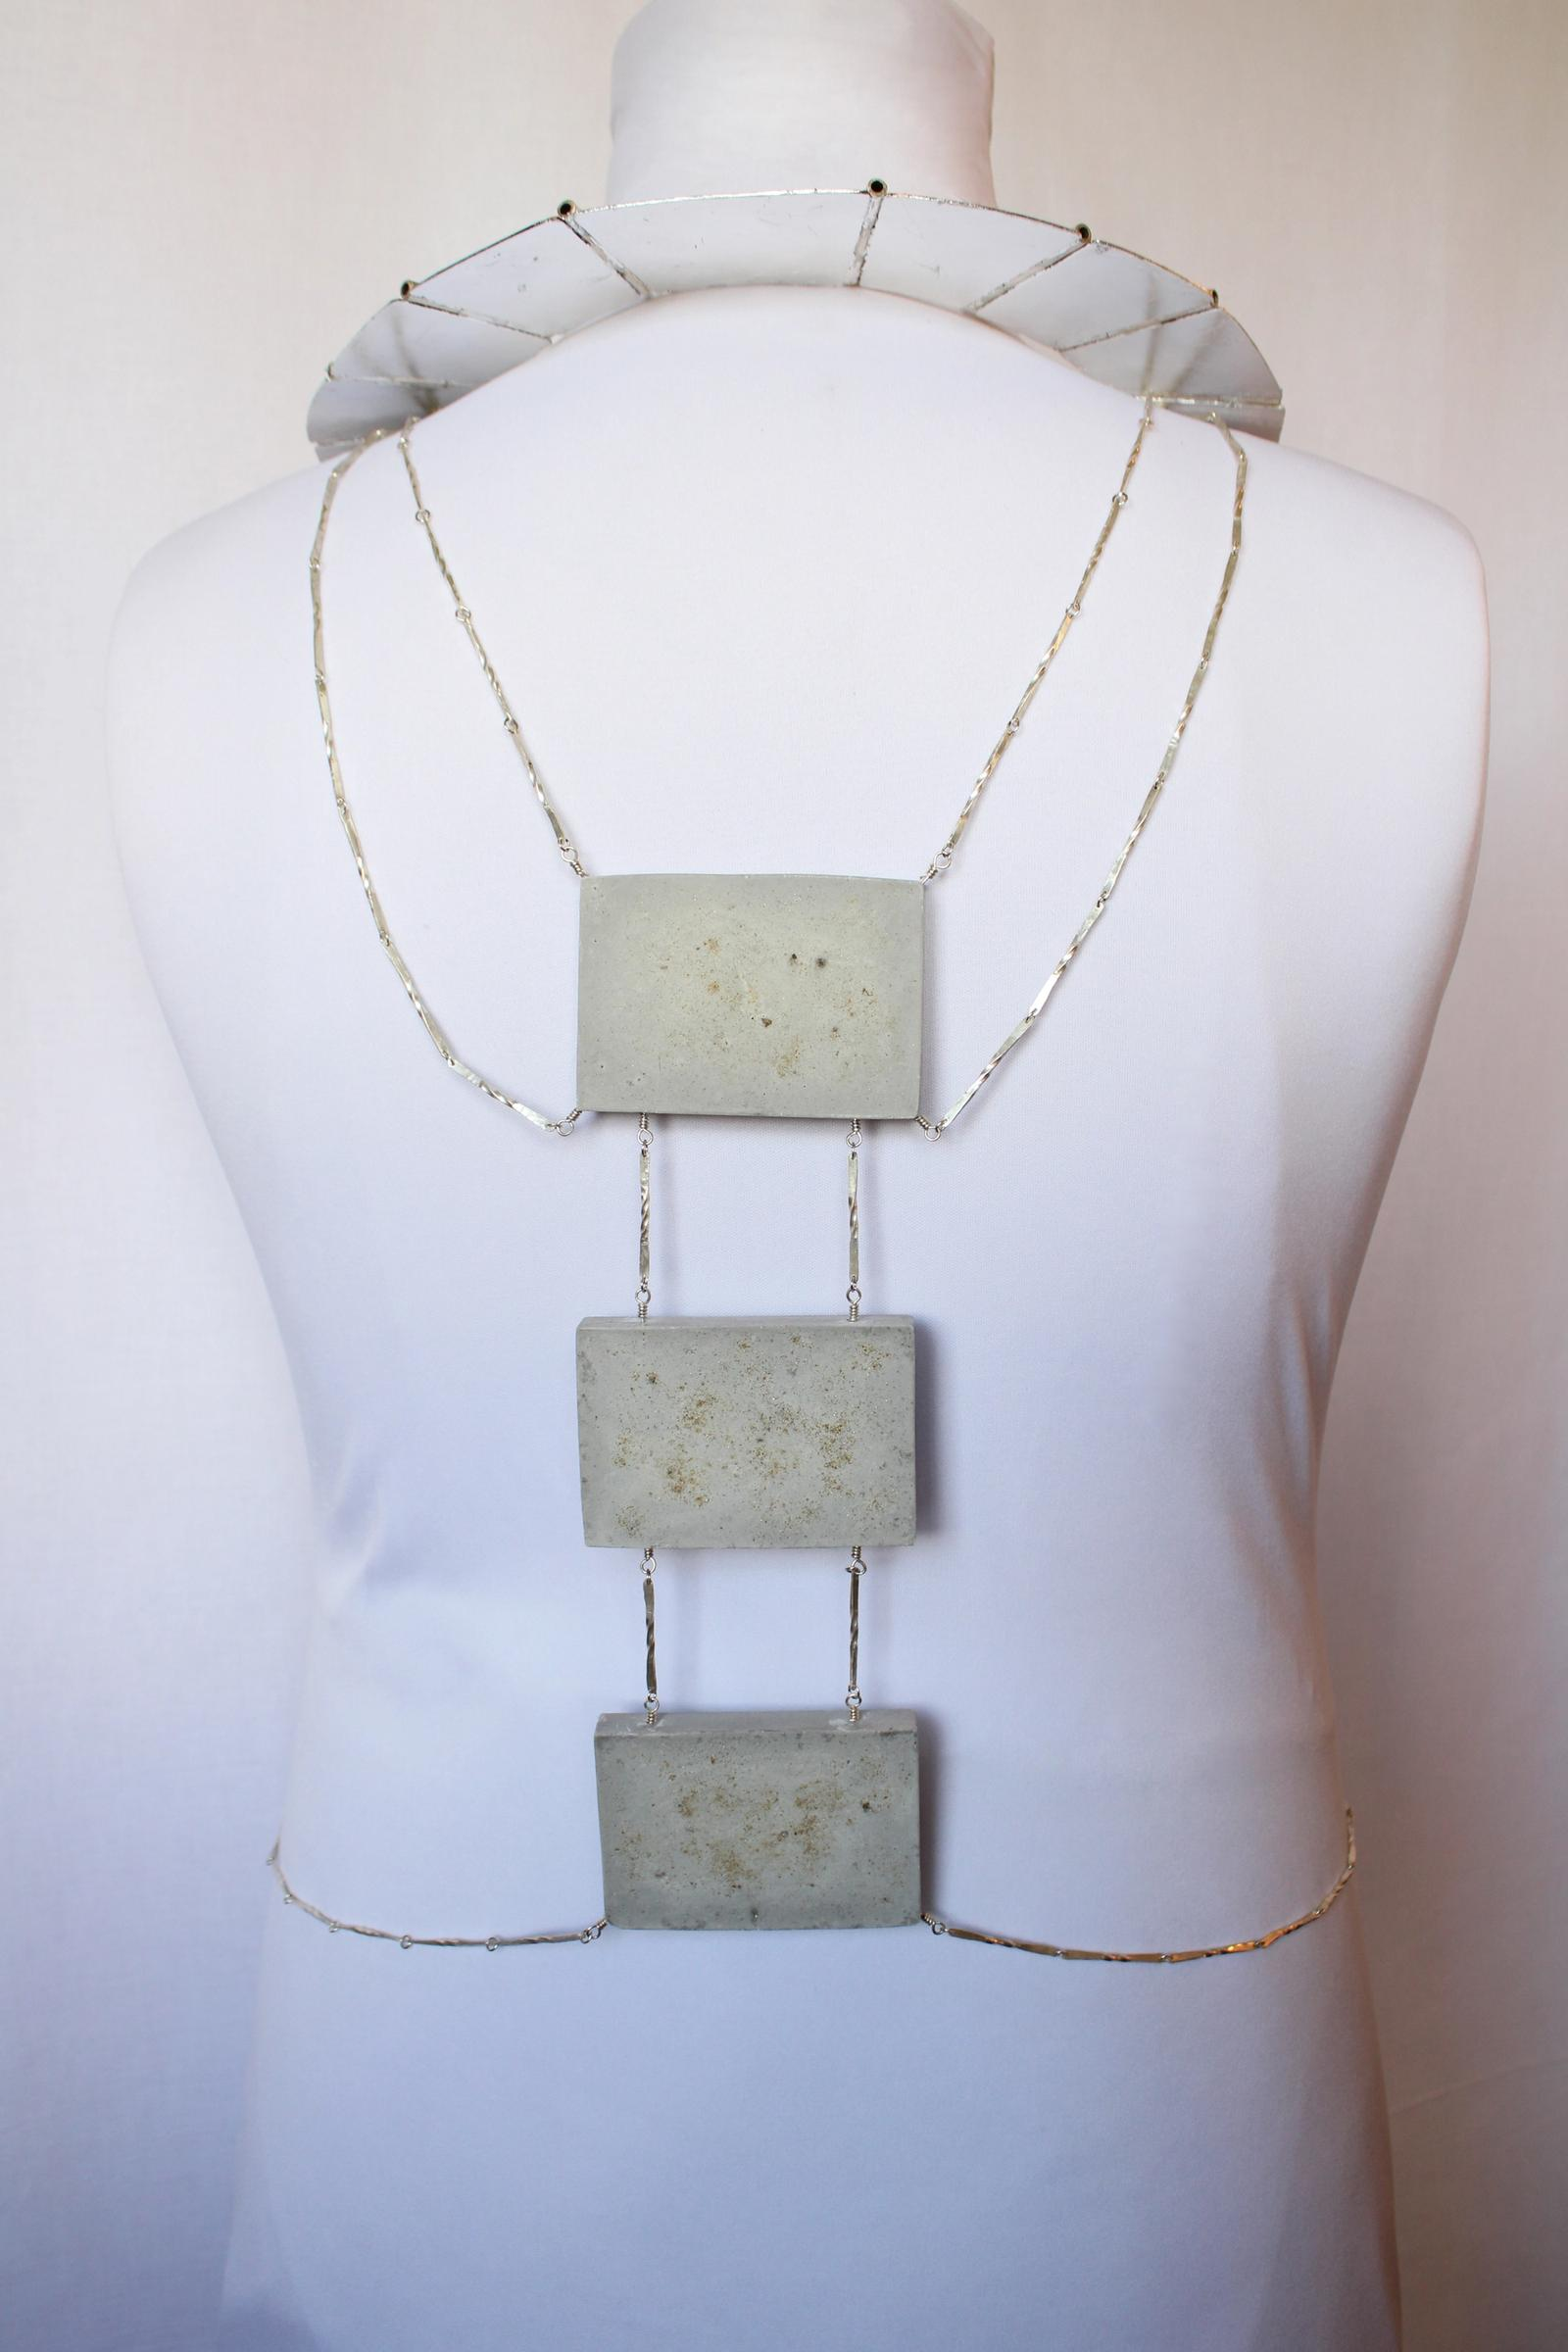 Back view; Body chain & necklace